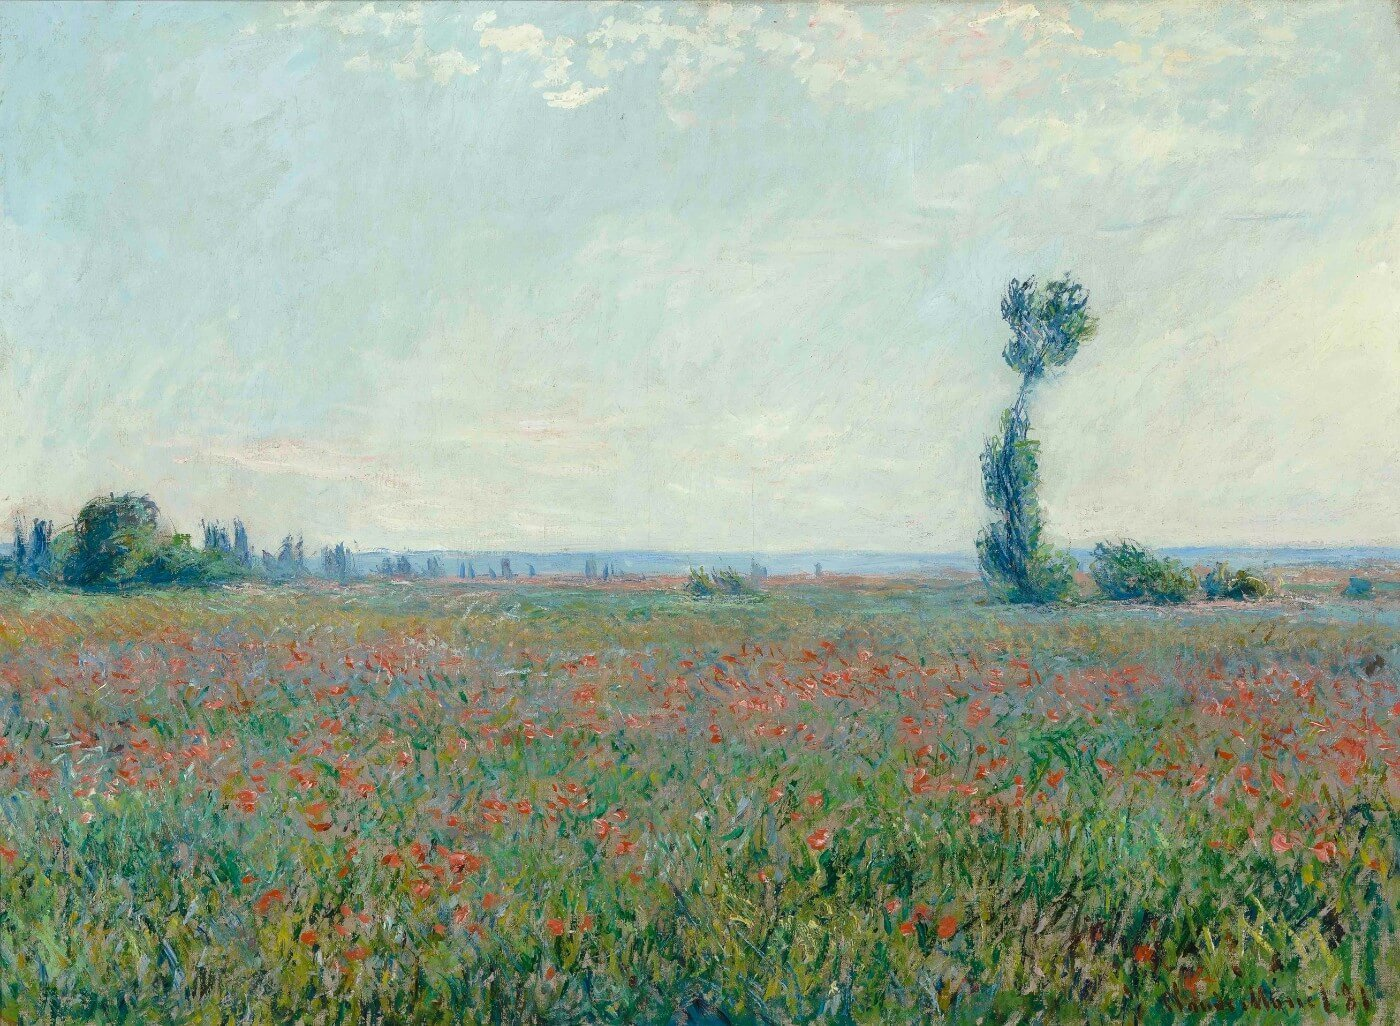 Field with poppies - Posters by Claude Monet | Buy Posters, Frames, Canvas  & Digital Art Prints | Small, Compact, Medium and Large Variants